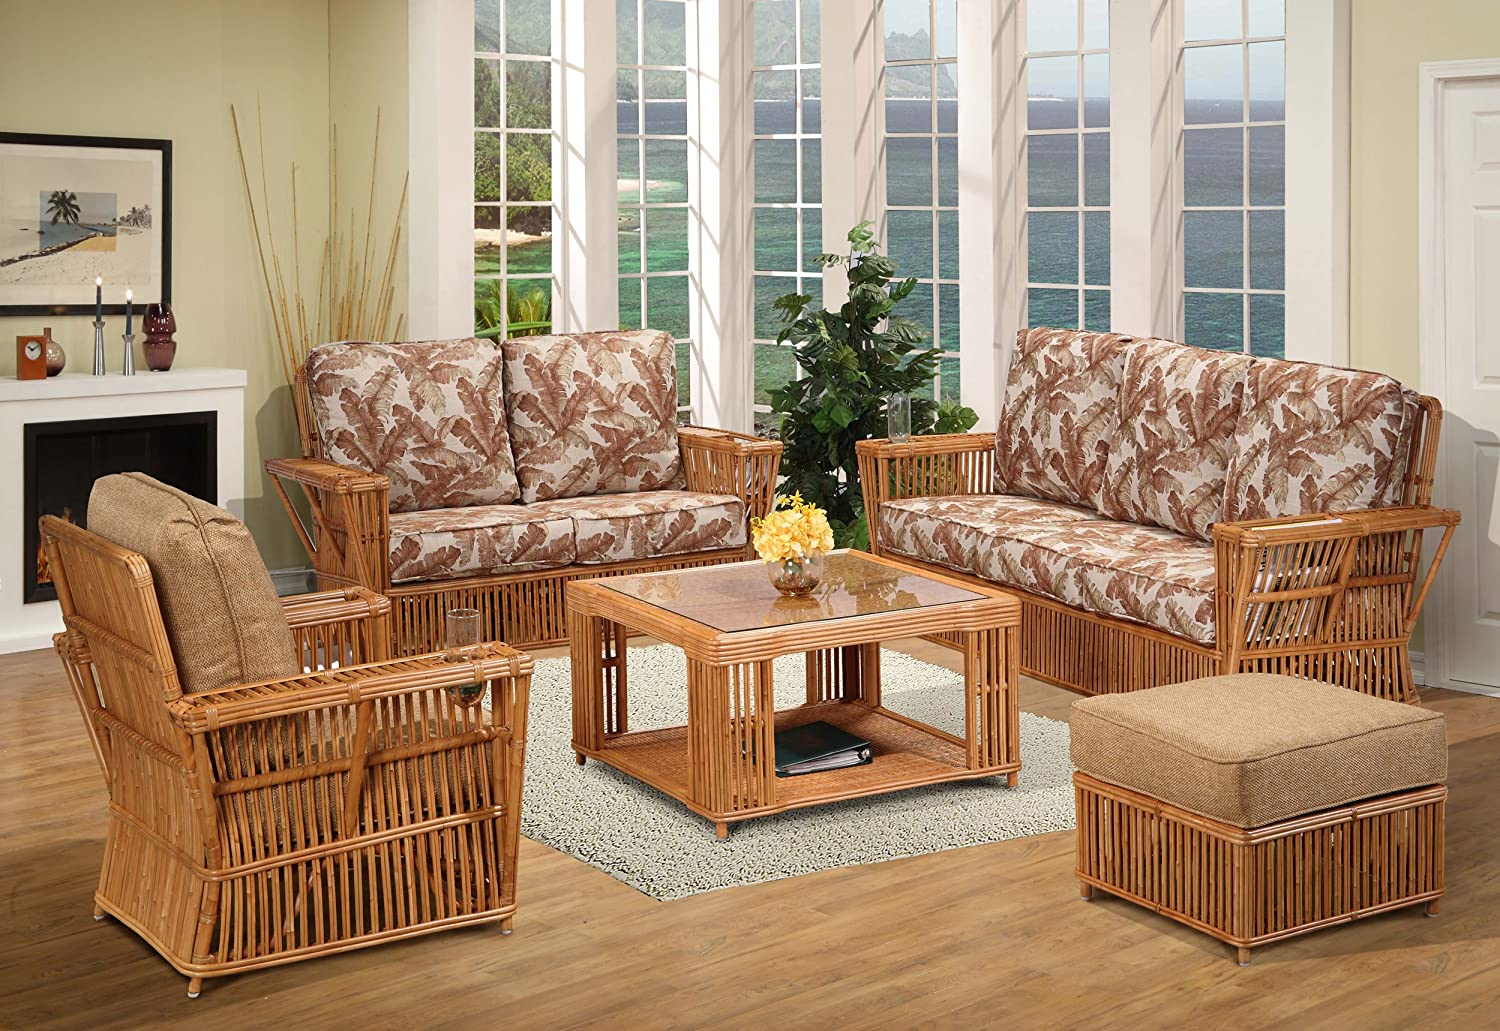 Amazon Com Kingrattan Com Rattan 5 Piece Living Room Furniture Sofa